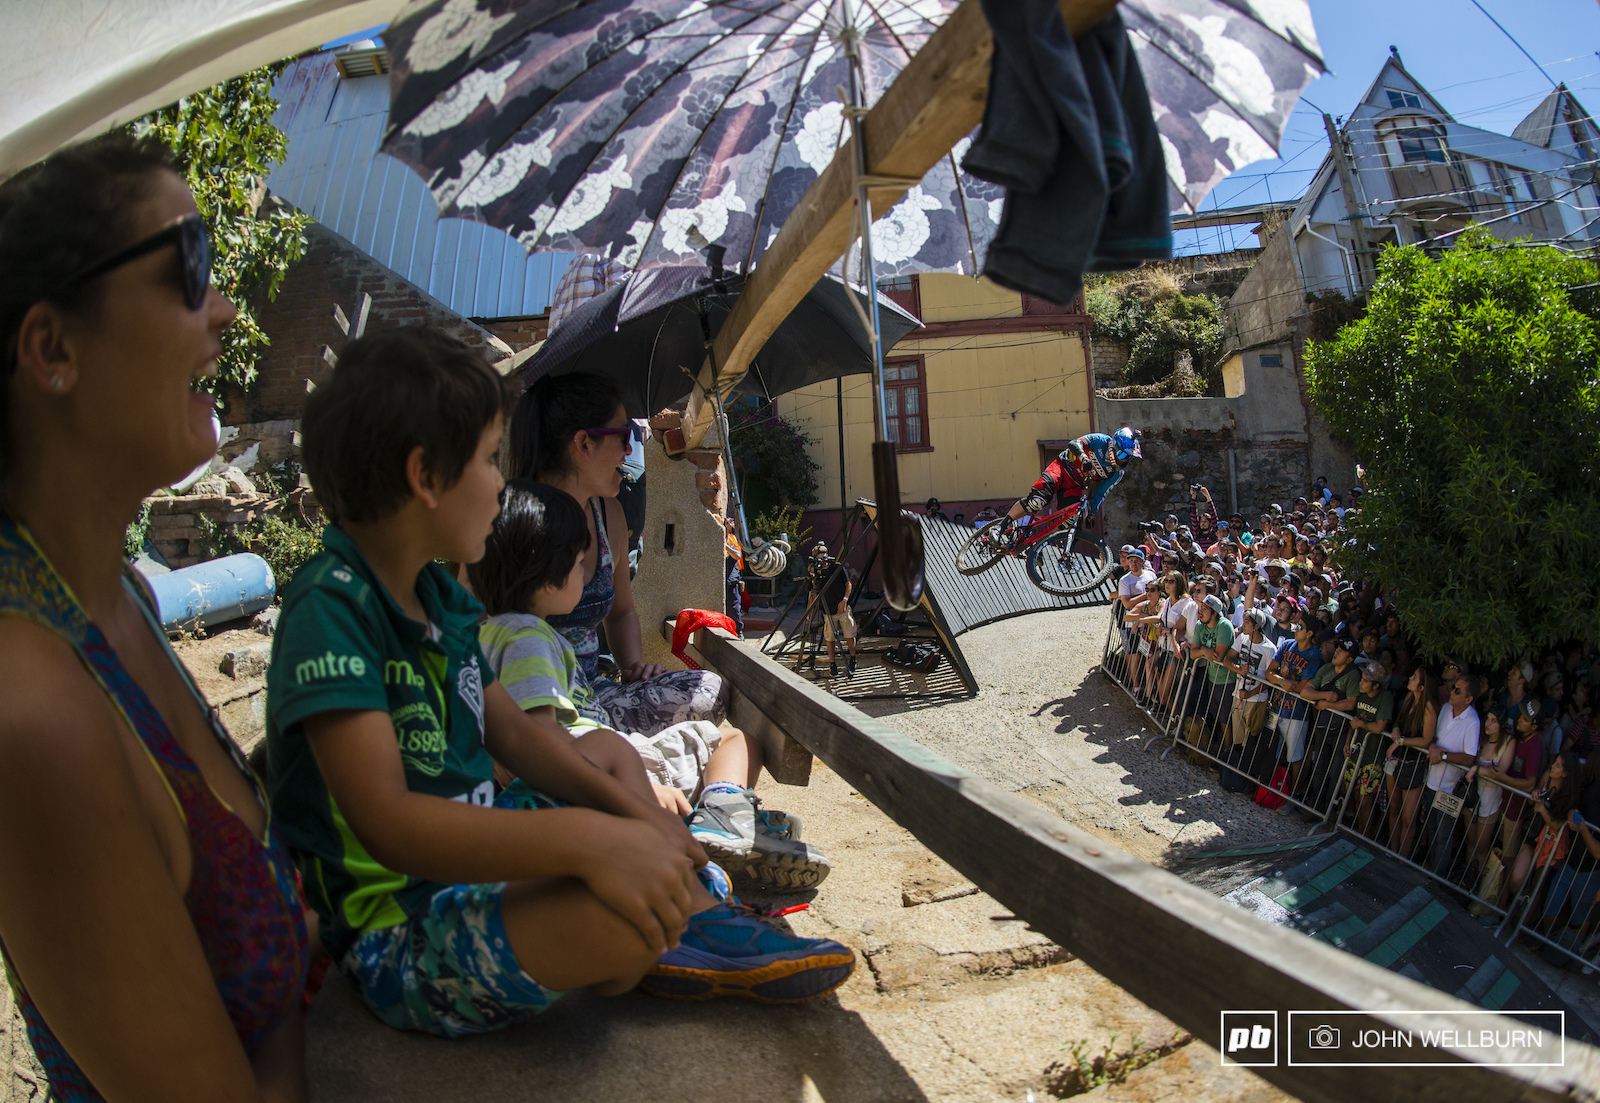 Tomas Slavik sends it over the wall ride gap as the kids look on with awe.